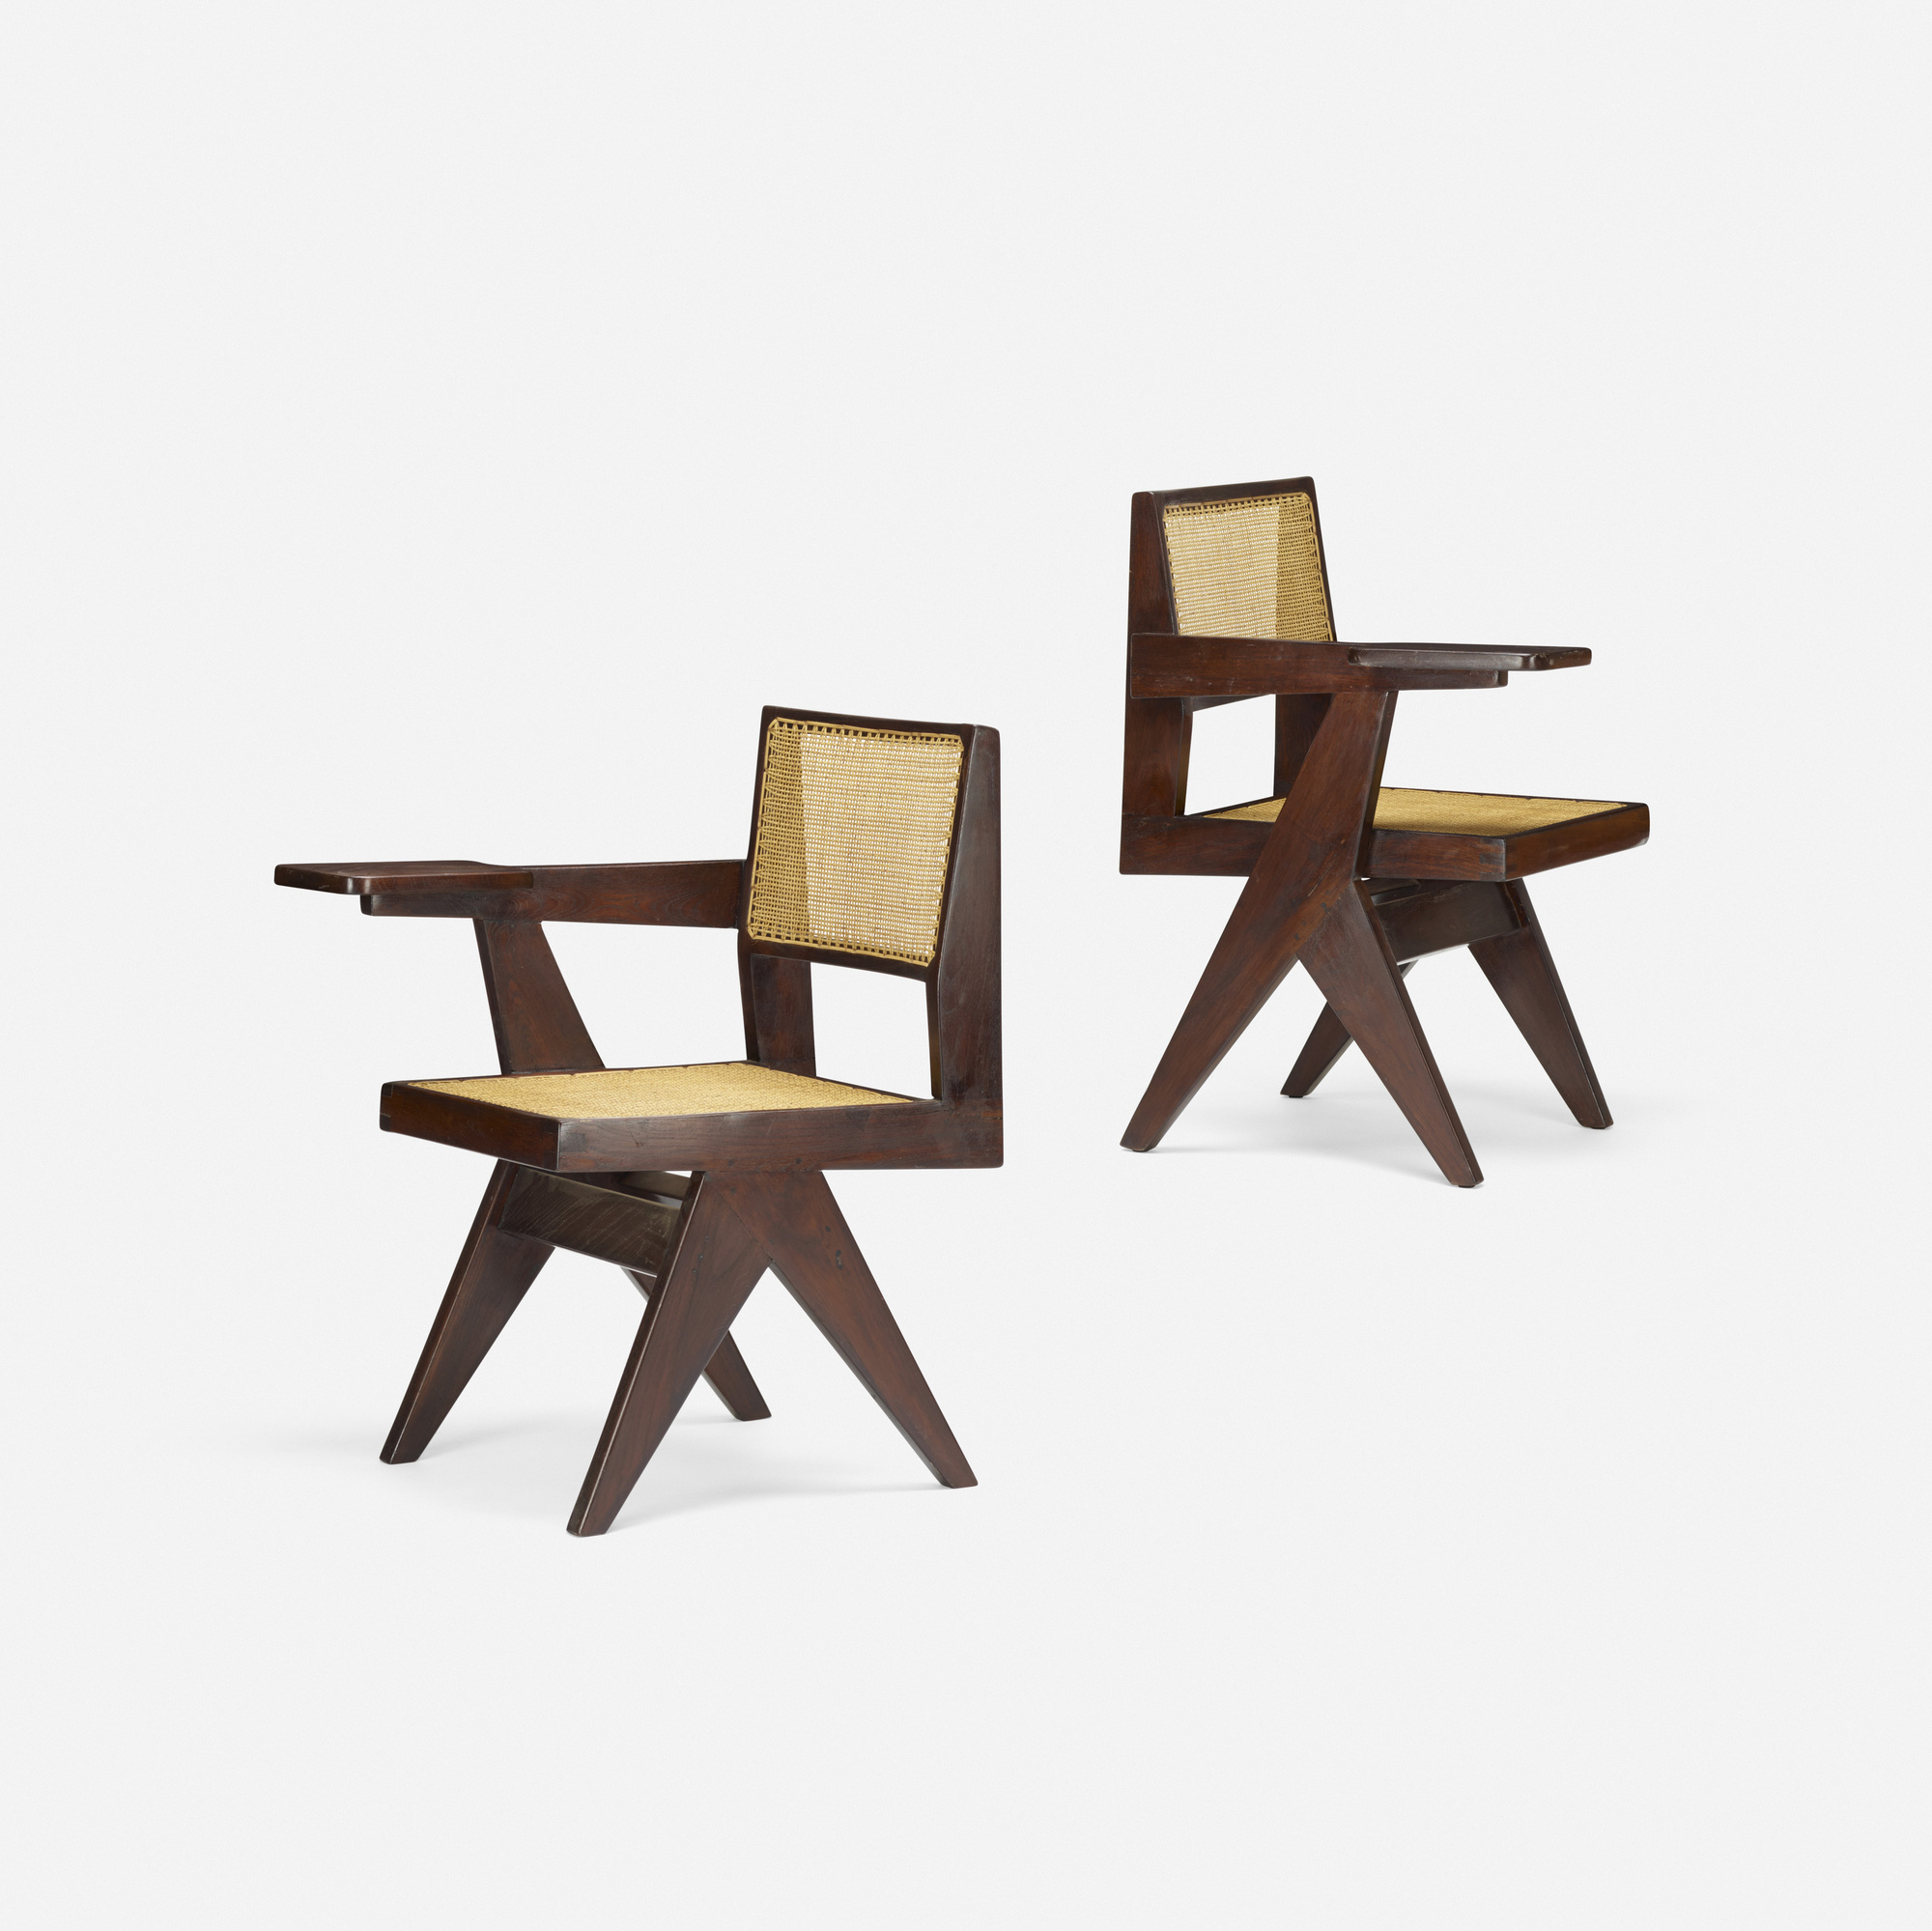 106: Pierre Jeanneret / pair of writing chairs from Chandigarh (1 of 3)